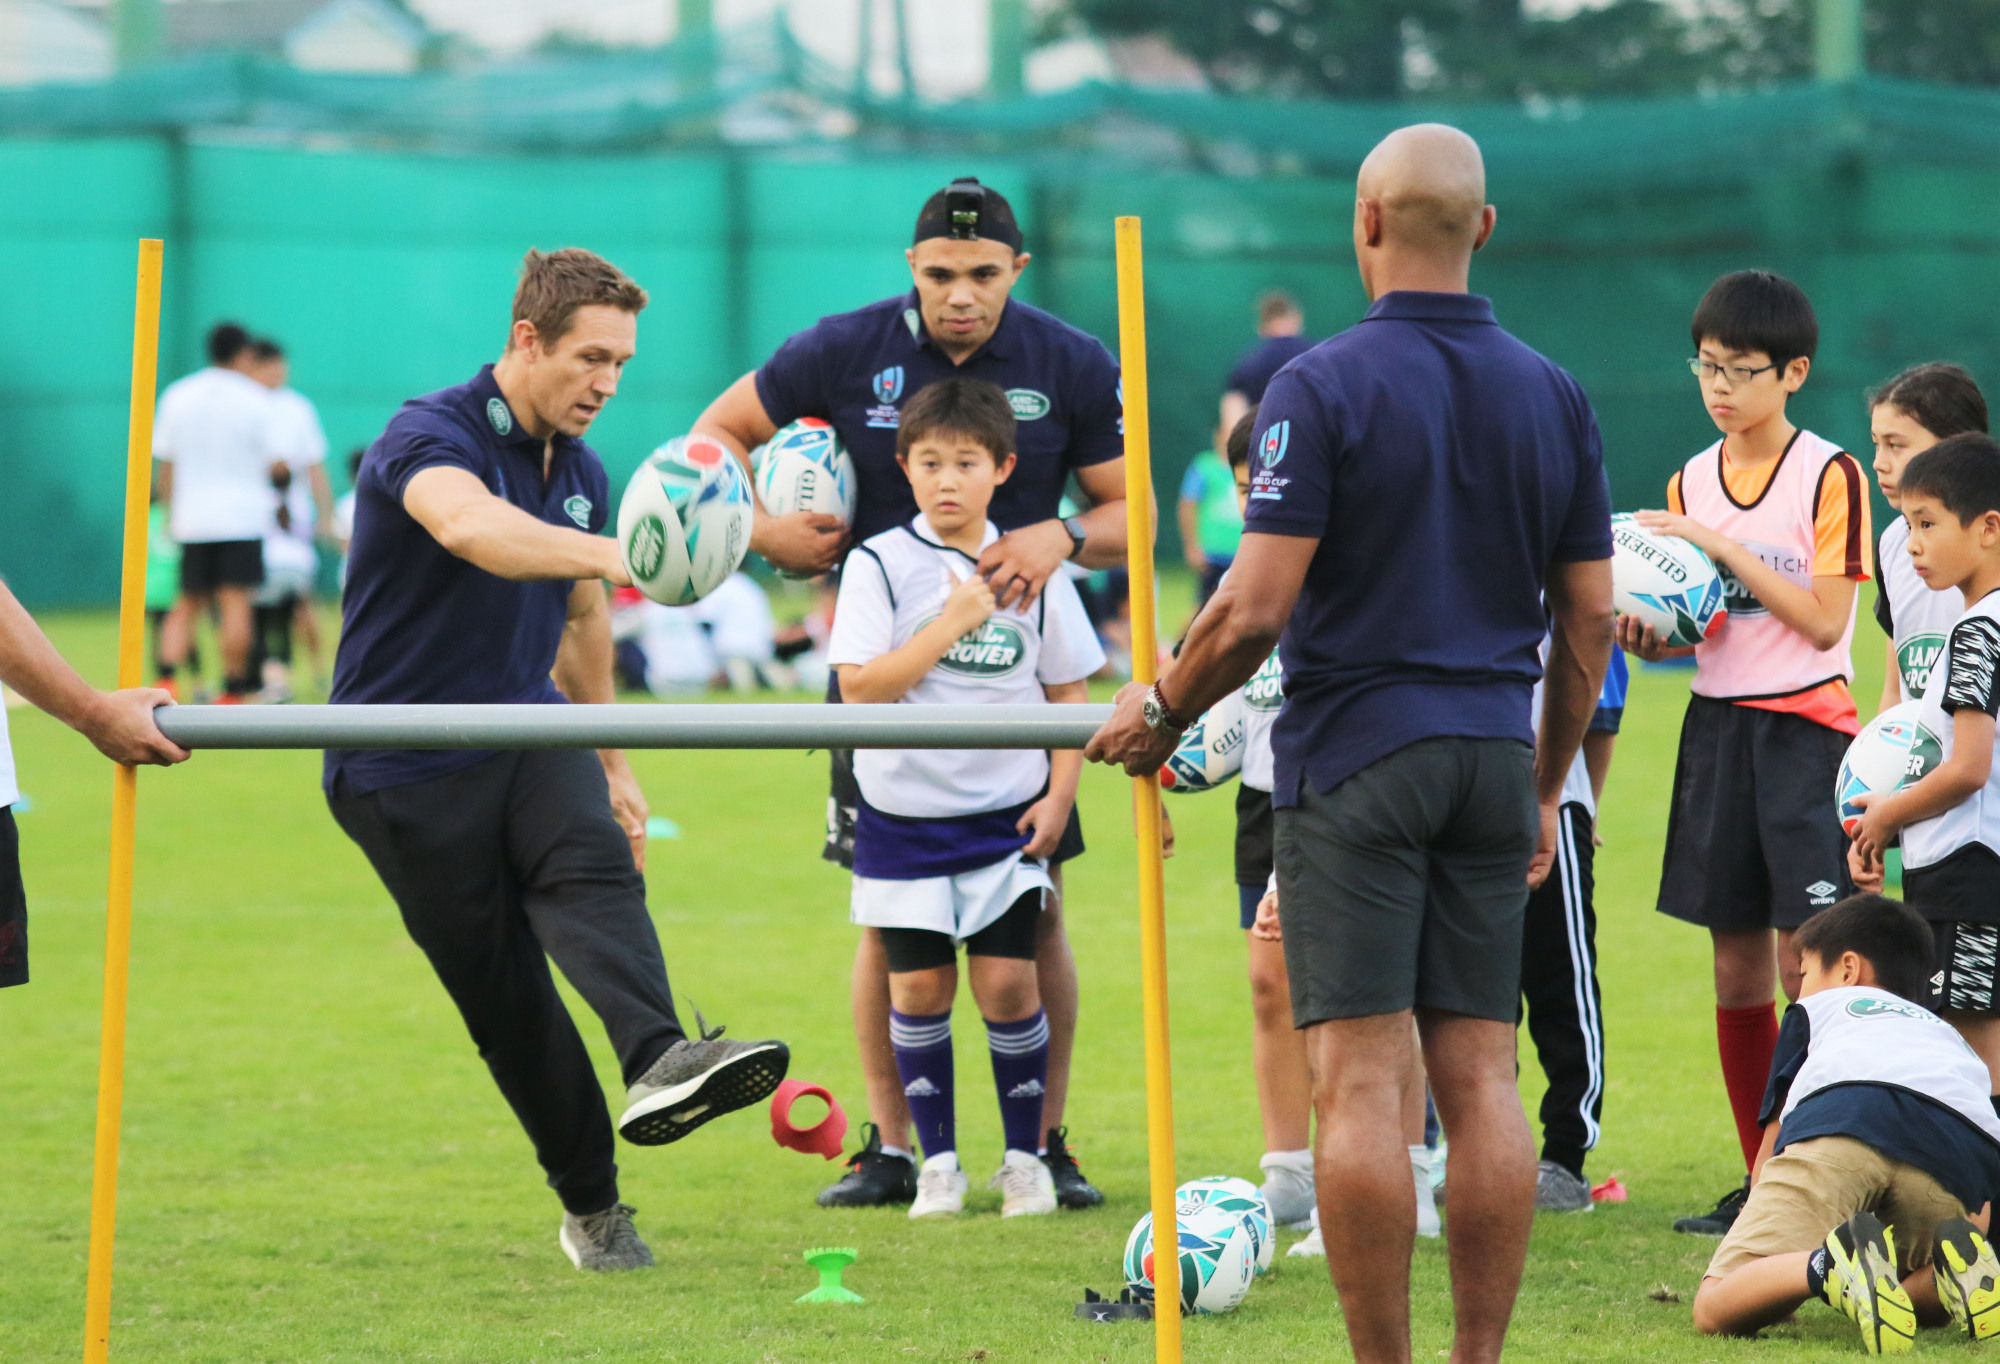 Former England flyhalf Jonny Wilkinson demonstrates kicking technique, while ex-South African winger Bryan Habana (center) looks on at Monday's 'Rugby Introduction Days' event in Tokyo. | KAZ NAGATSUKA